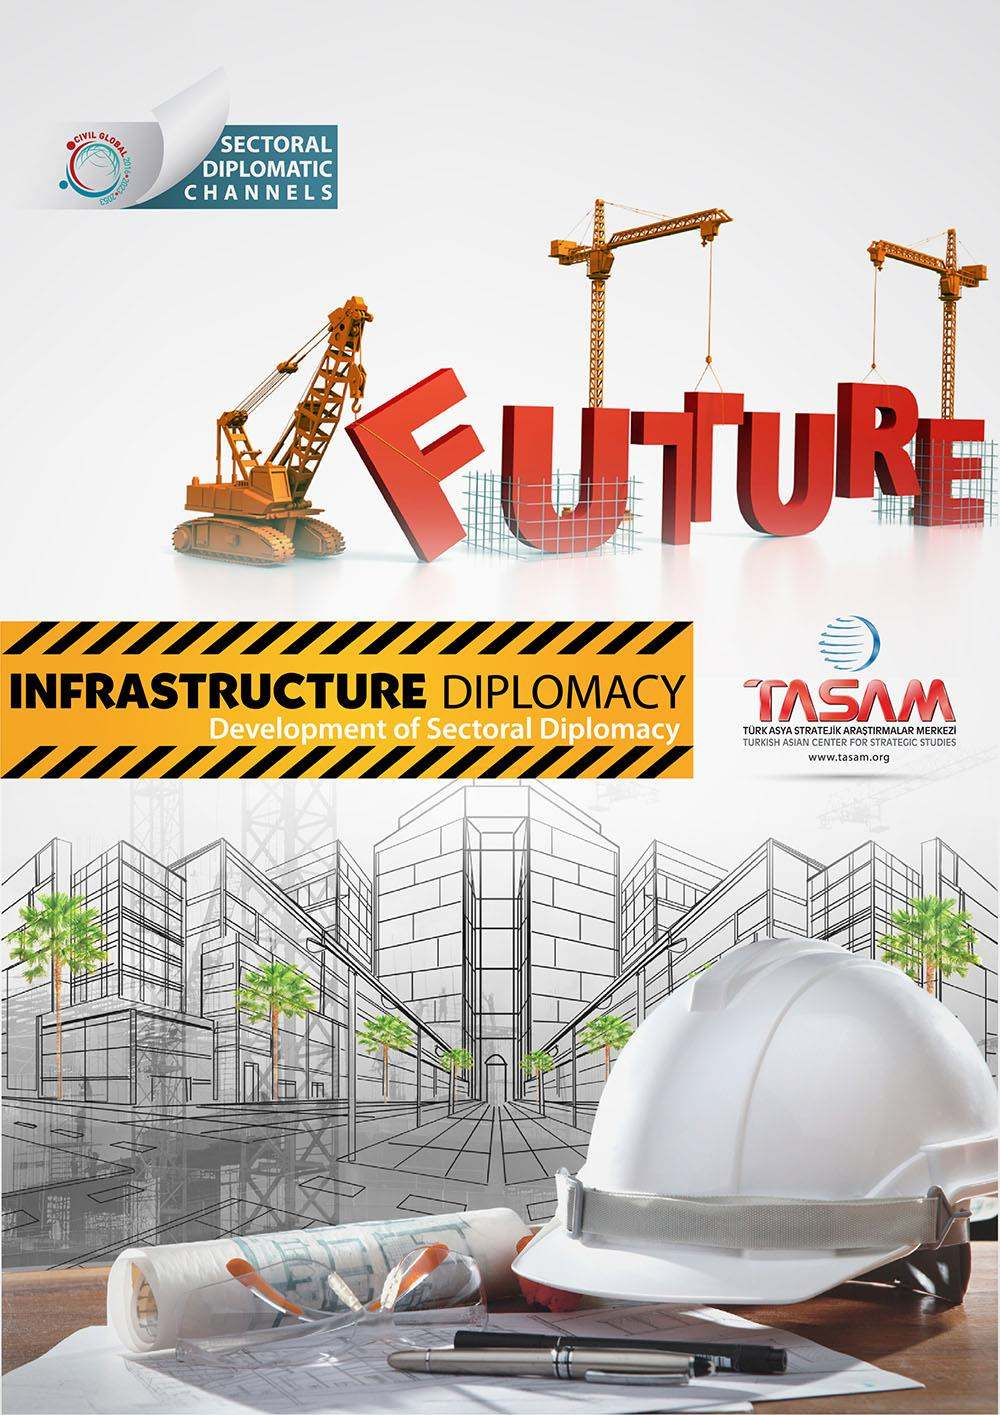 Infrastructure Diplomacy Workshop